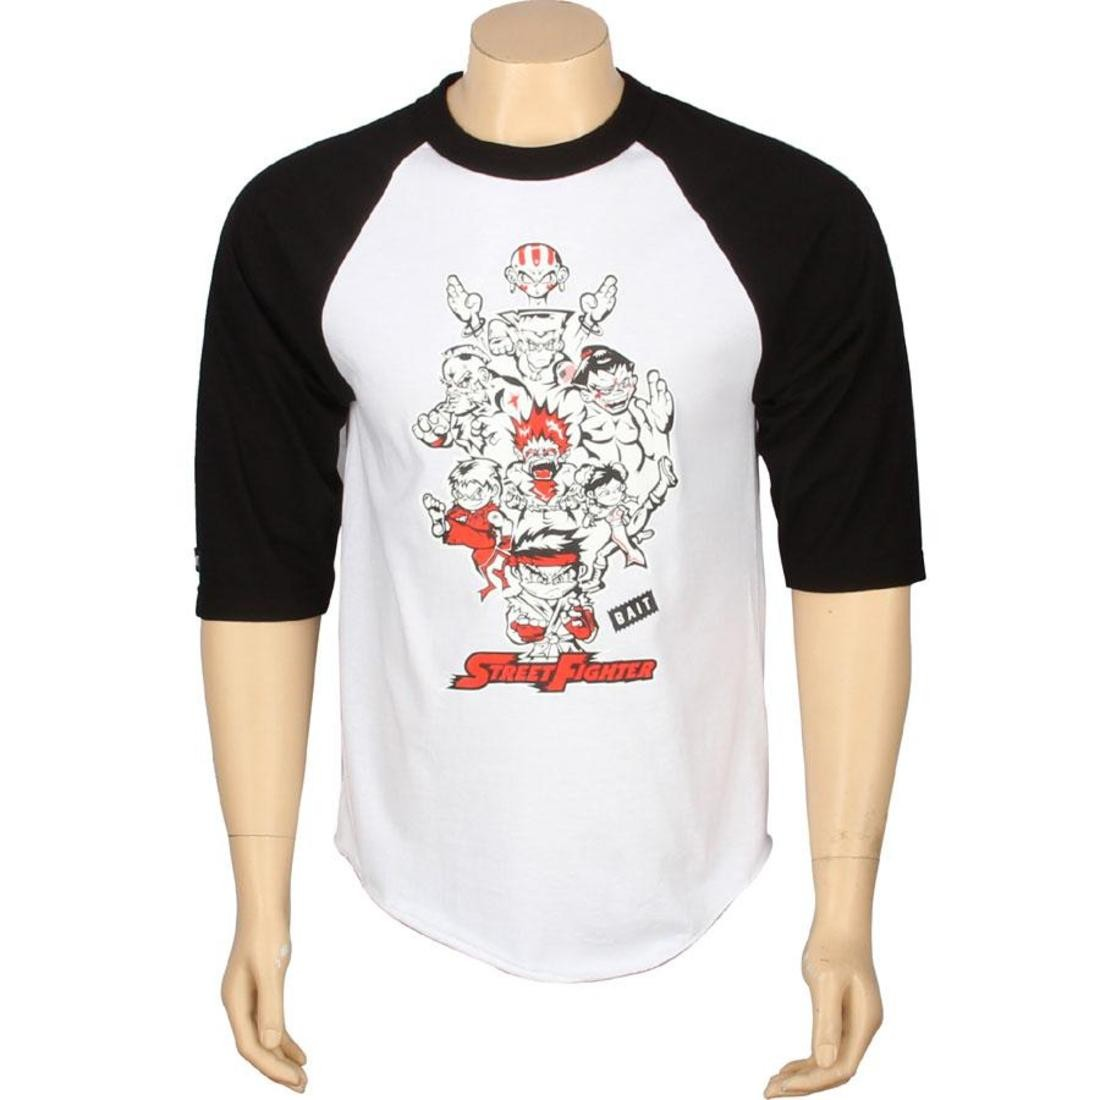 BAIT x Street Fighter Artist Series Originals Raglan - Jerome Lu (white / black)